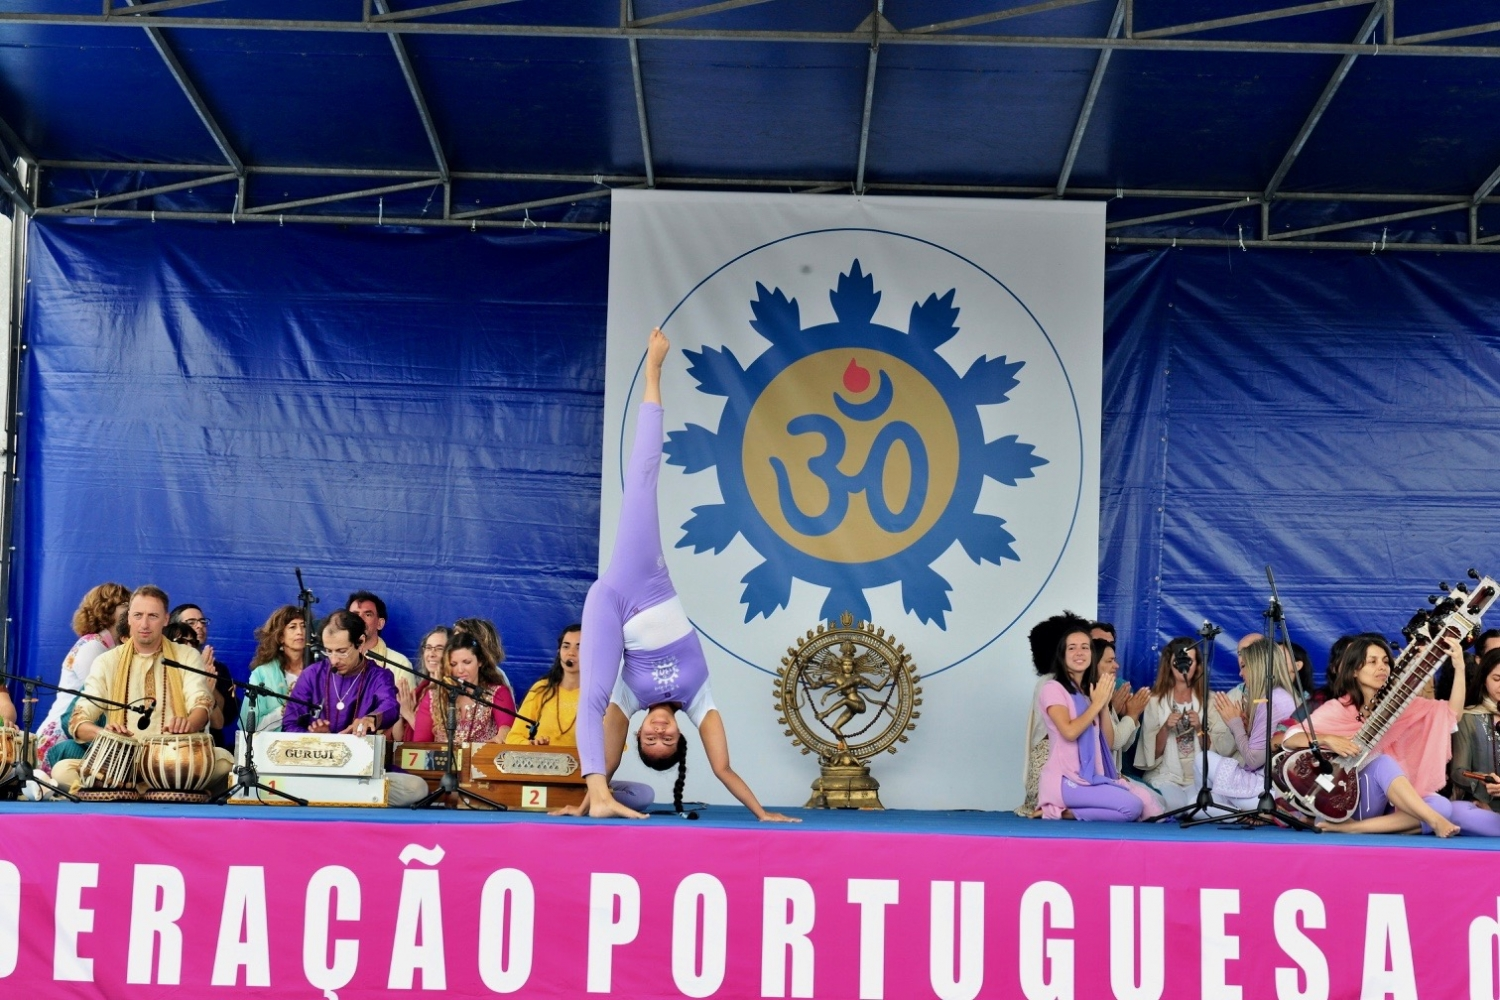 Conmemoración del International Day of Yoga - IDY / Día Internacional del Yoga - 2017 - Lisboa, Portugal